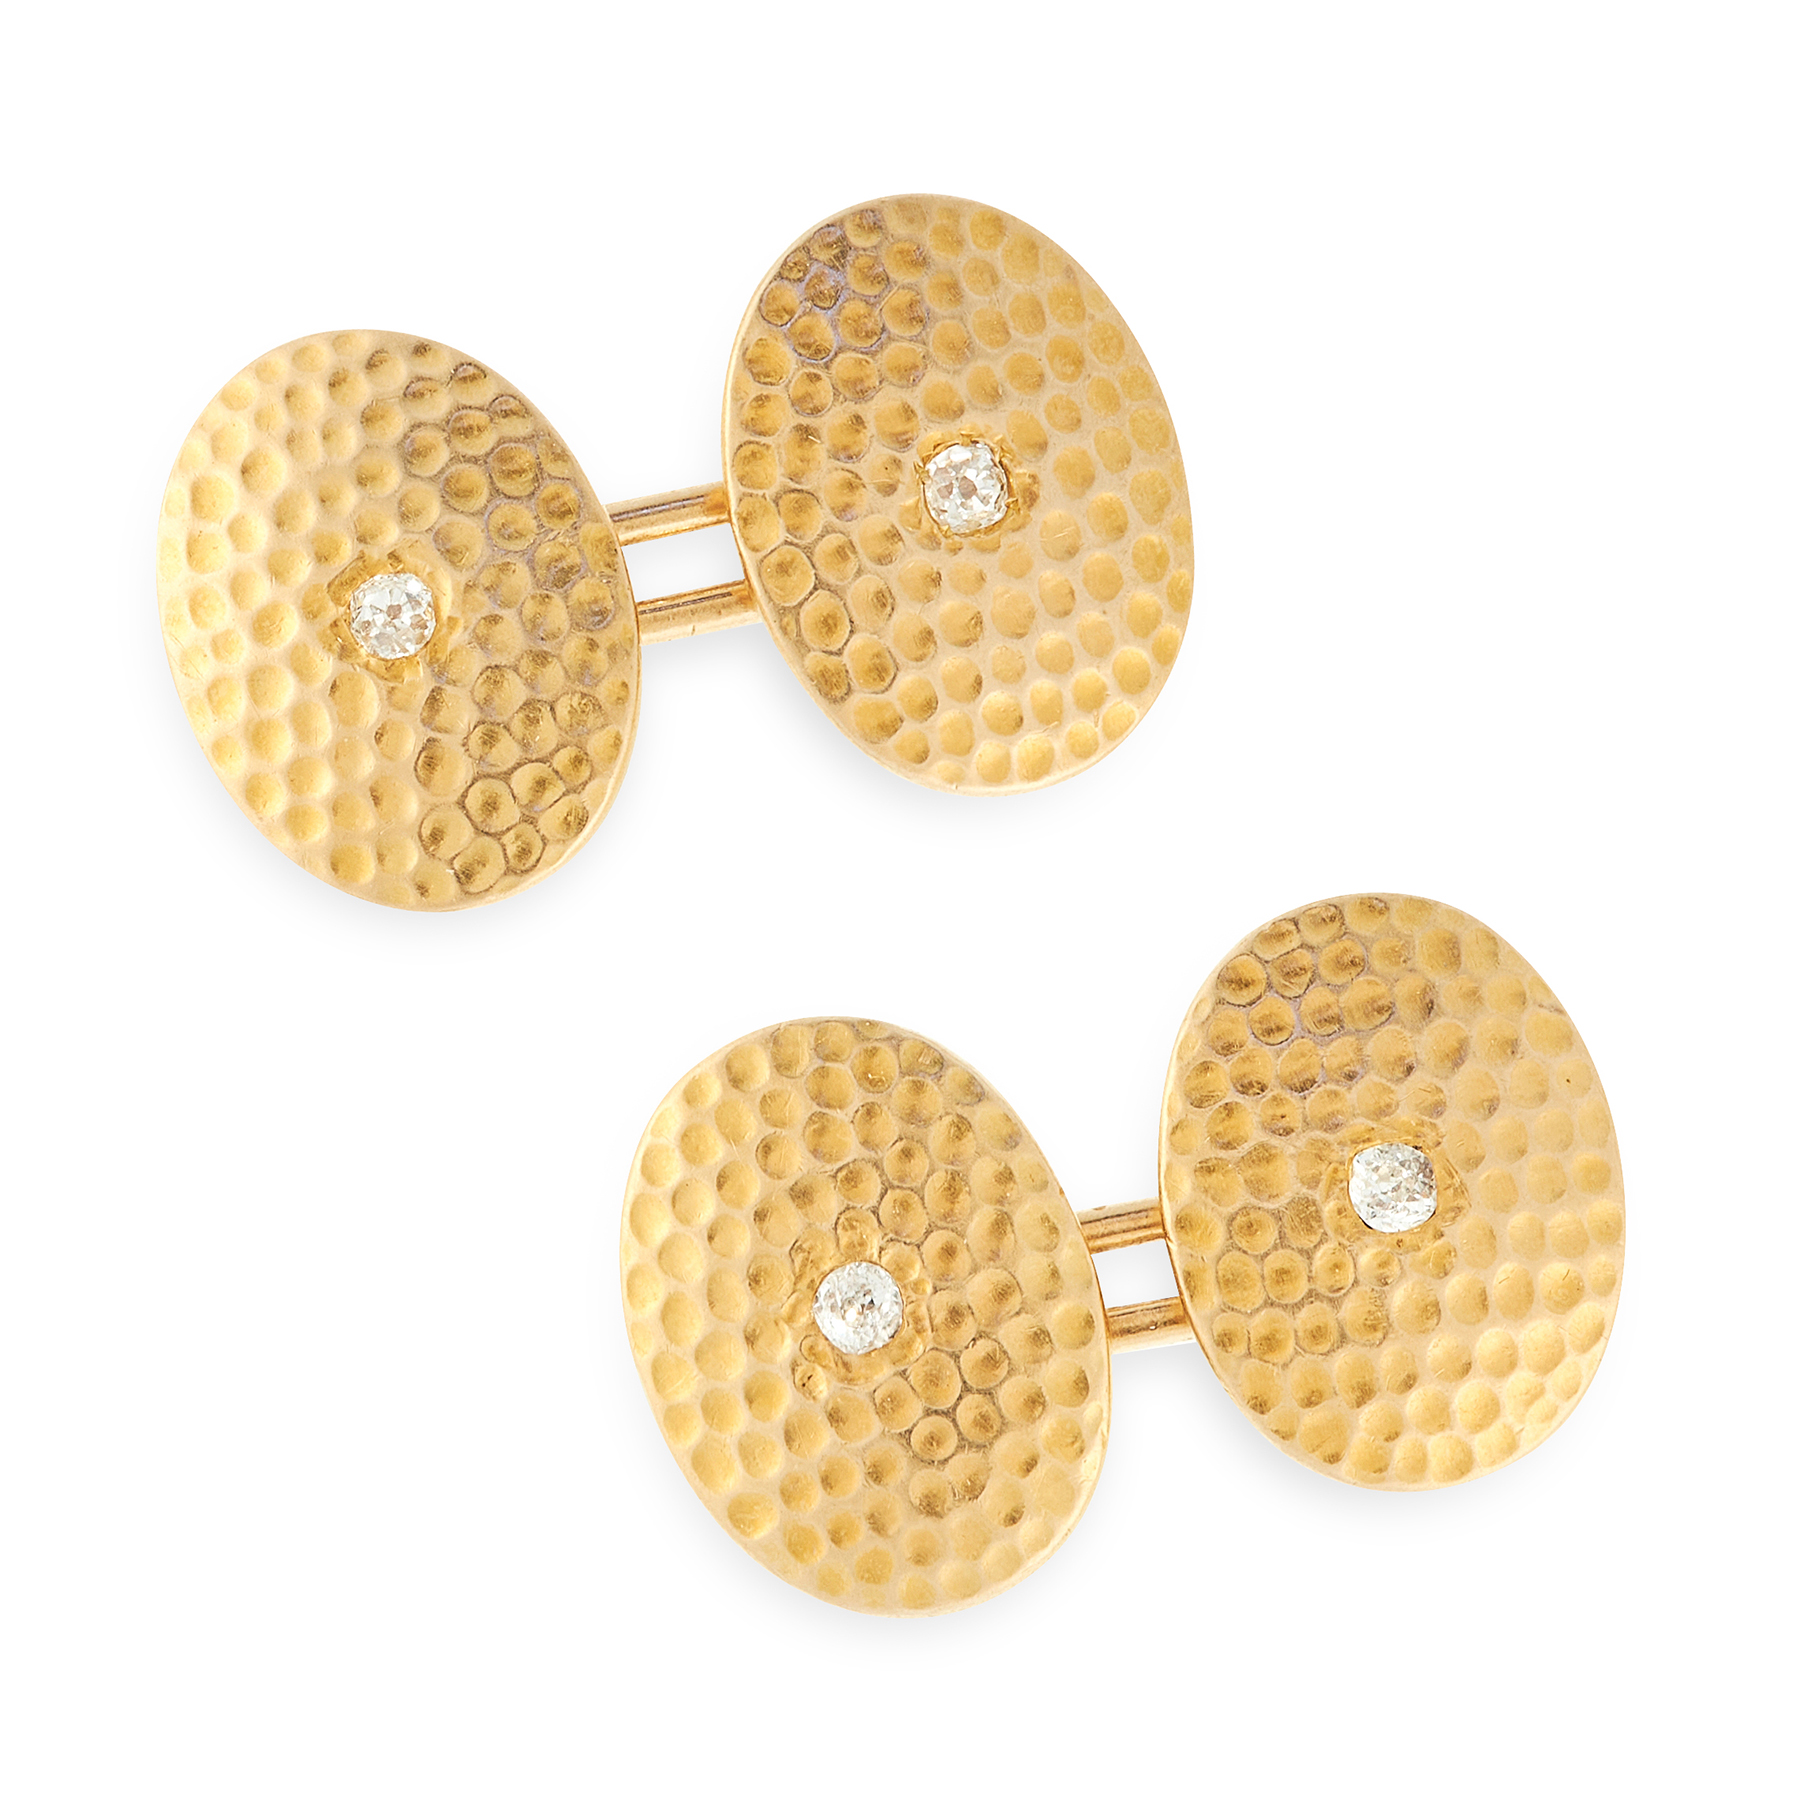 A PAIR OF DIAMOND CUFFLINKS, EARLY 20TH CENTURY in 18ct yellow gold, each formed of two oval faces - Image 2 of 2